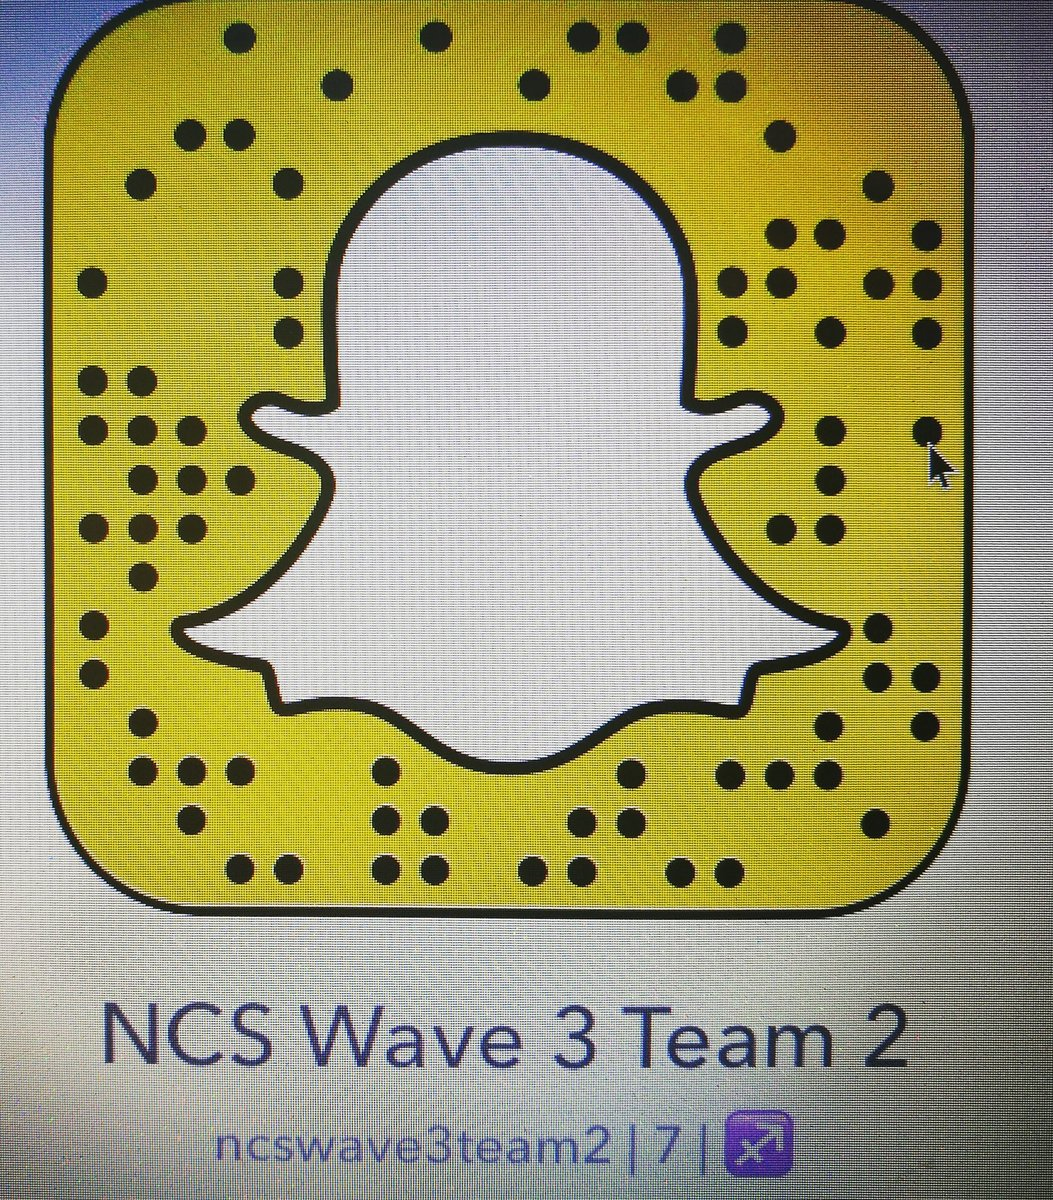 Follow our Snapchat. Will be snapping our @shrewsburyark Sleepout and our @HopeHouseKids awareness walk!! #Snapchat #followus #charity #NCS<br>http://pic.twitter.com/CAddjpXkdt